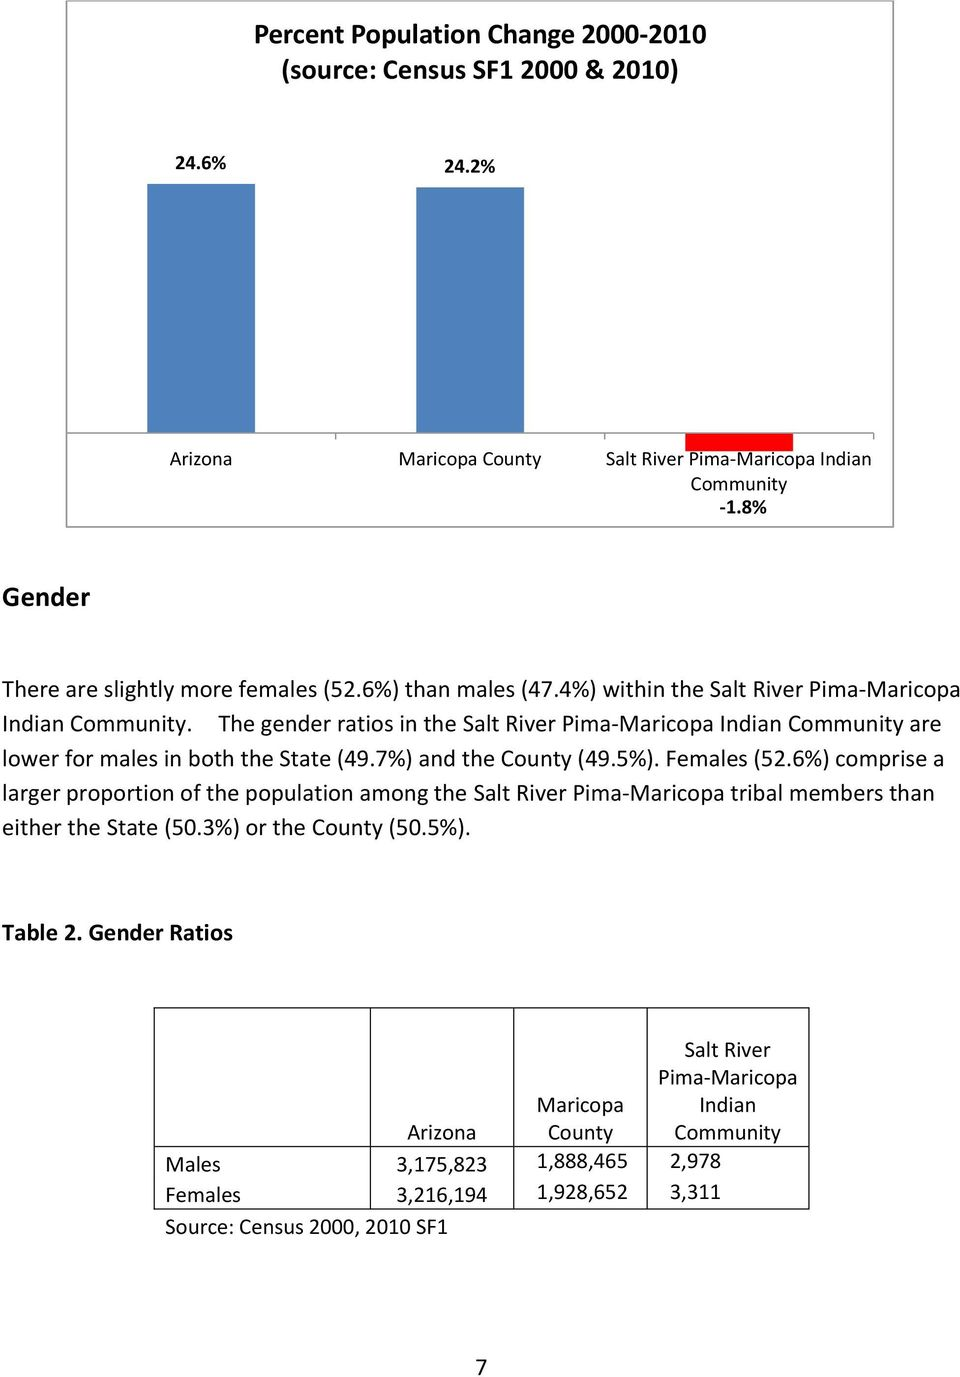 The gender ratios in the Salt River Pima-Maricopa Indian Community are lower for males in both the State (49.7%) and the County (49.5%). Females (52.